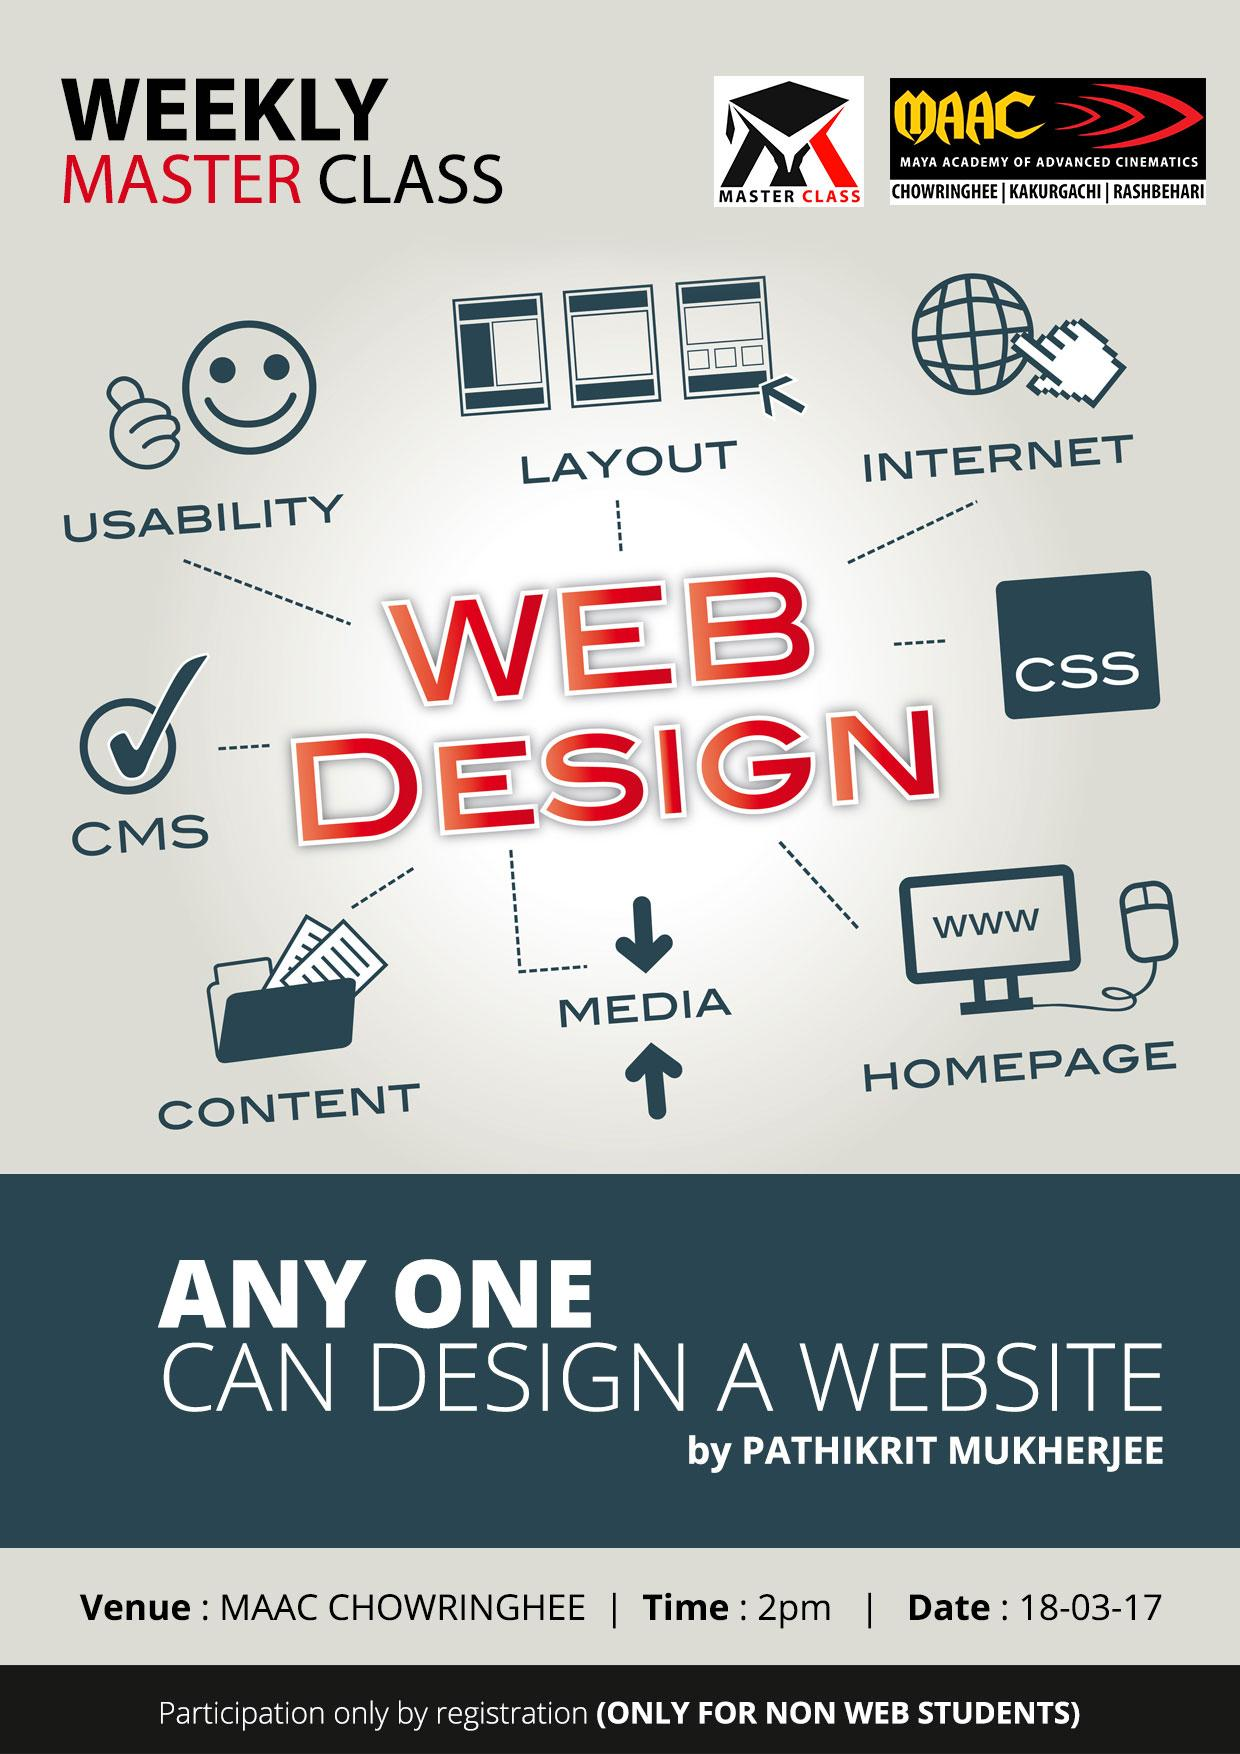 Weekly Master Class on ANY ONE �CAN DESIGN WEBSITE - Pathikrit Mukherjee